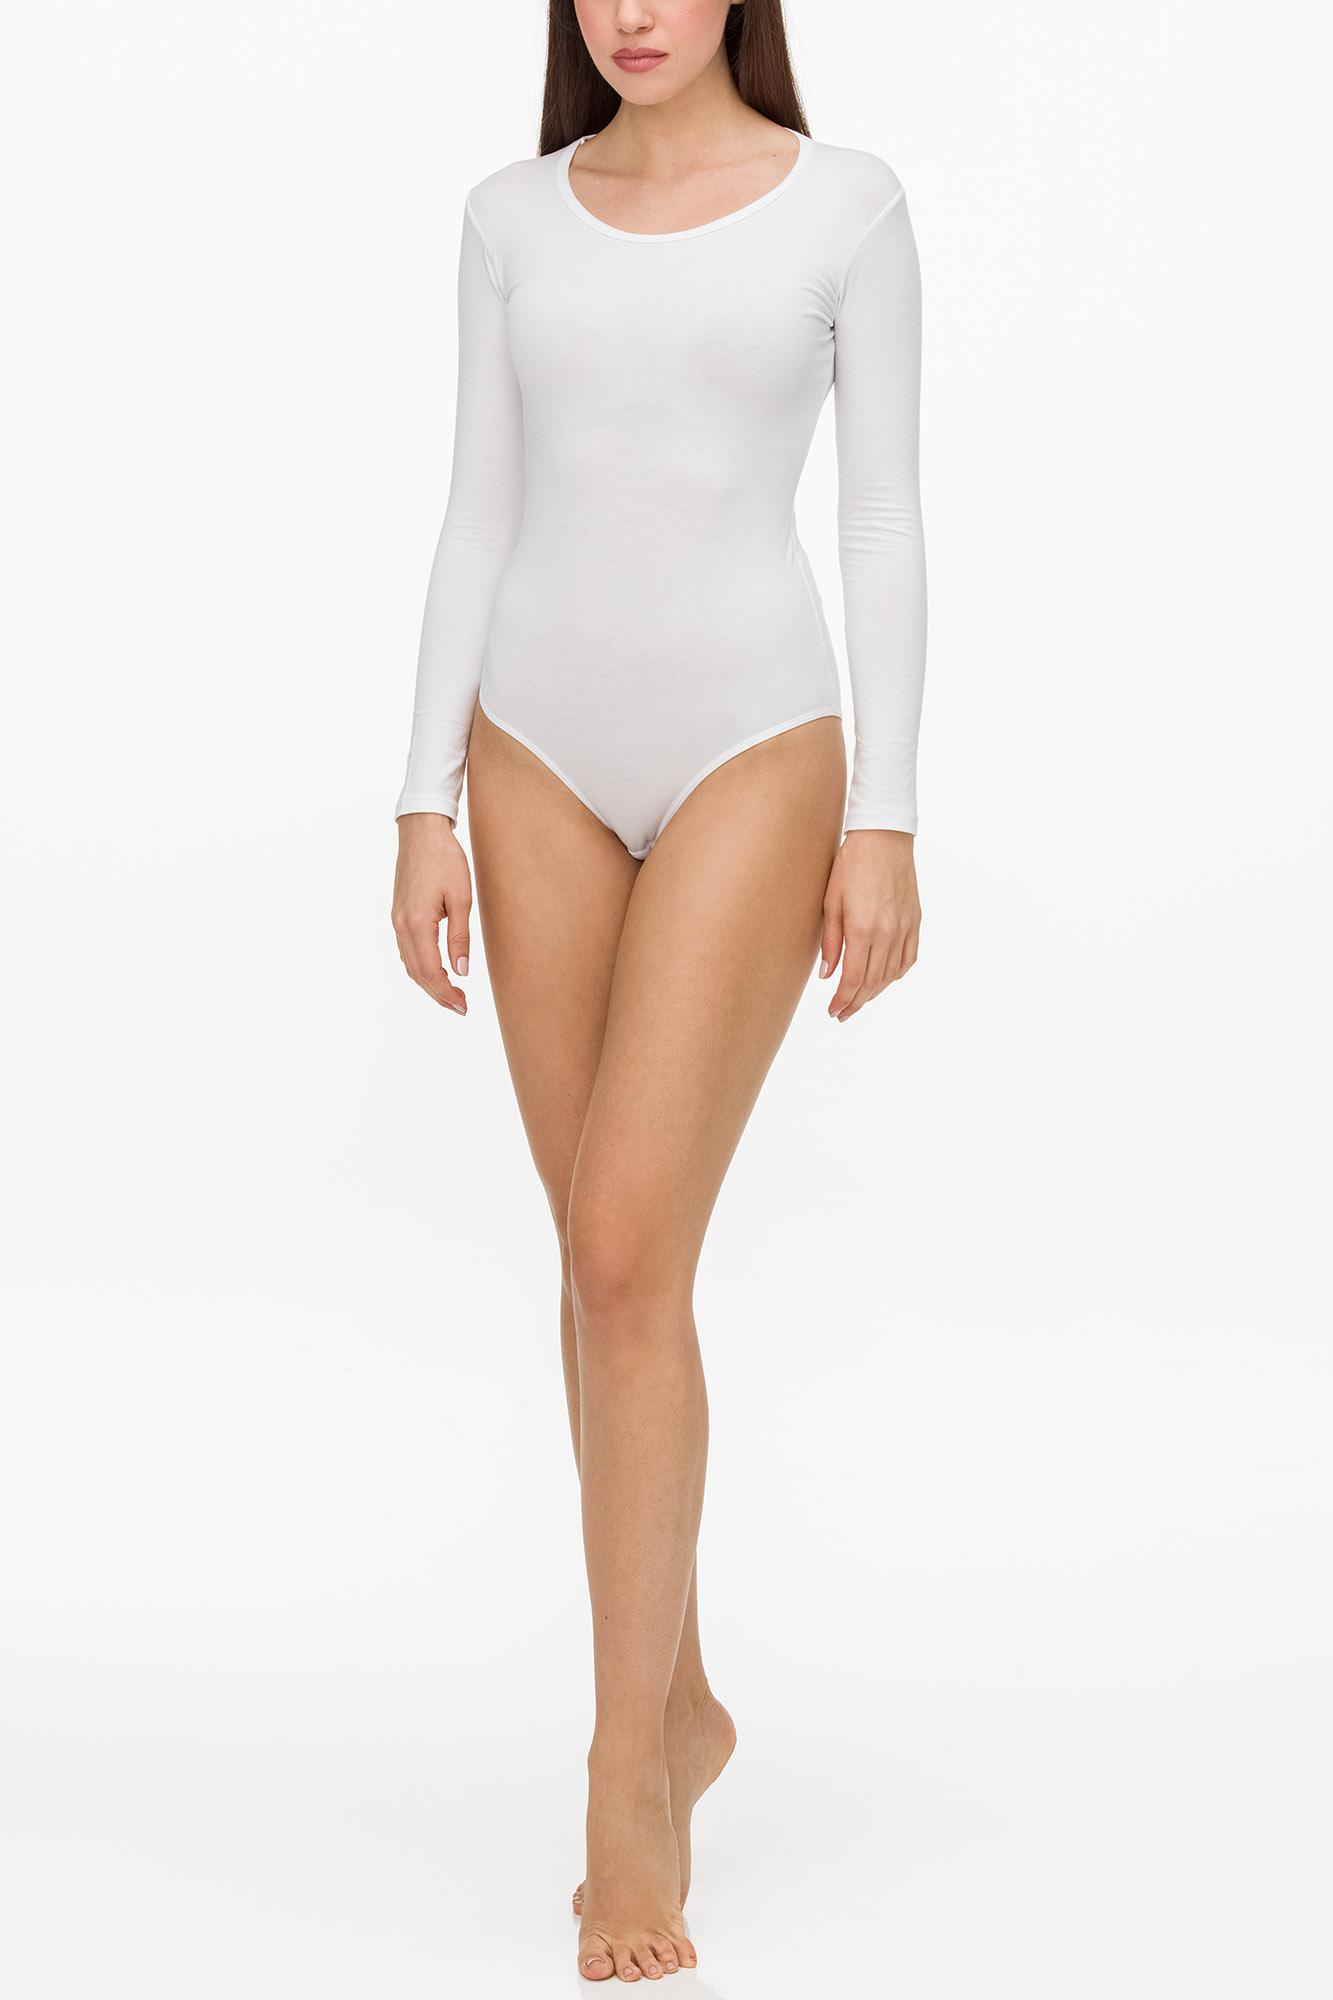 Women's Long Sleeve Cotton Bodysuit